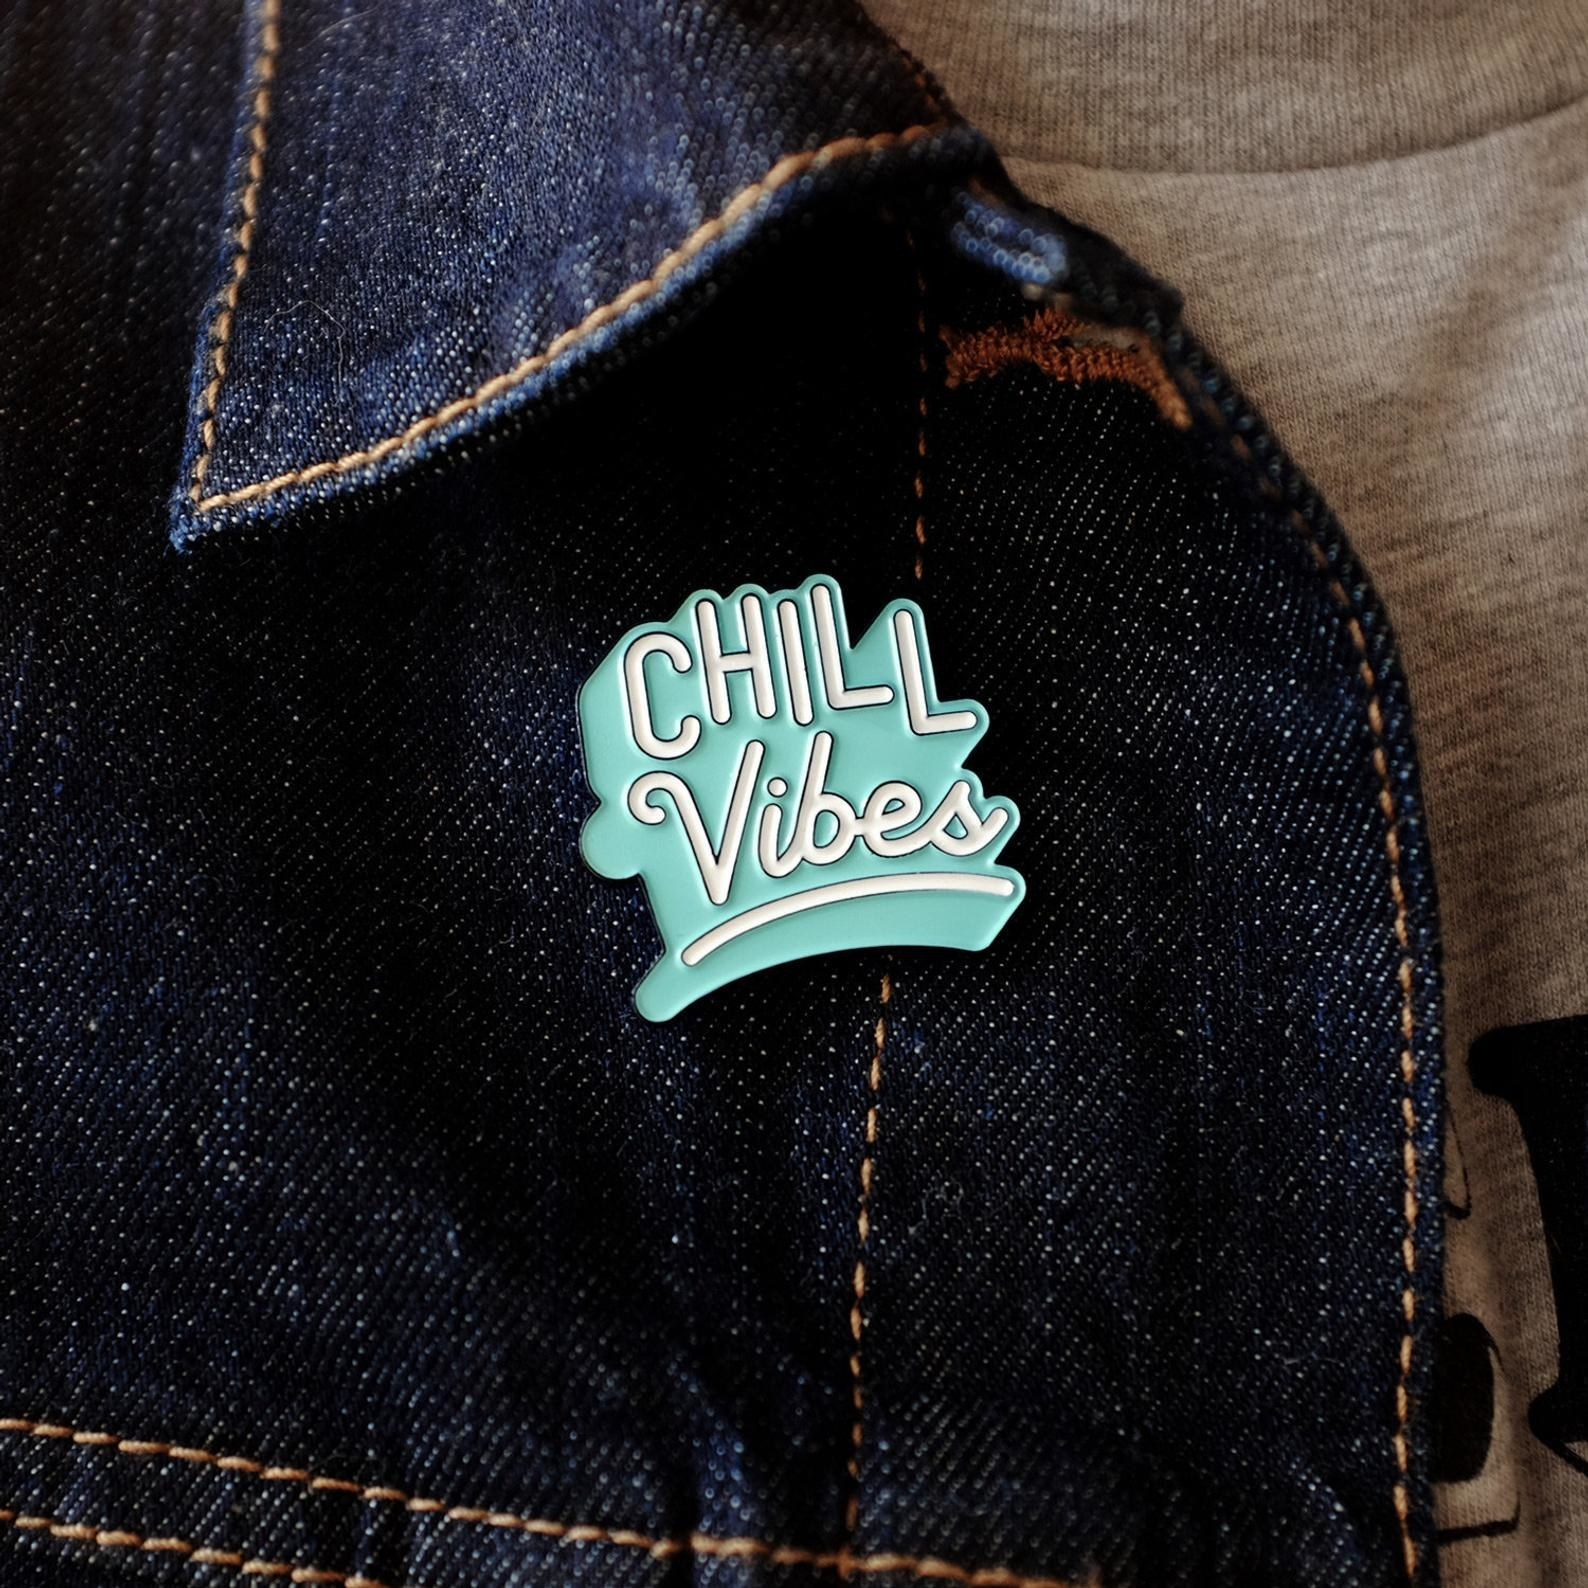 The pin on a denim jacket